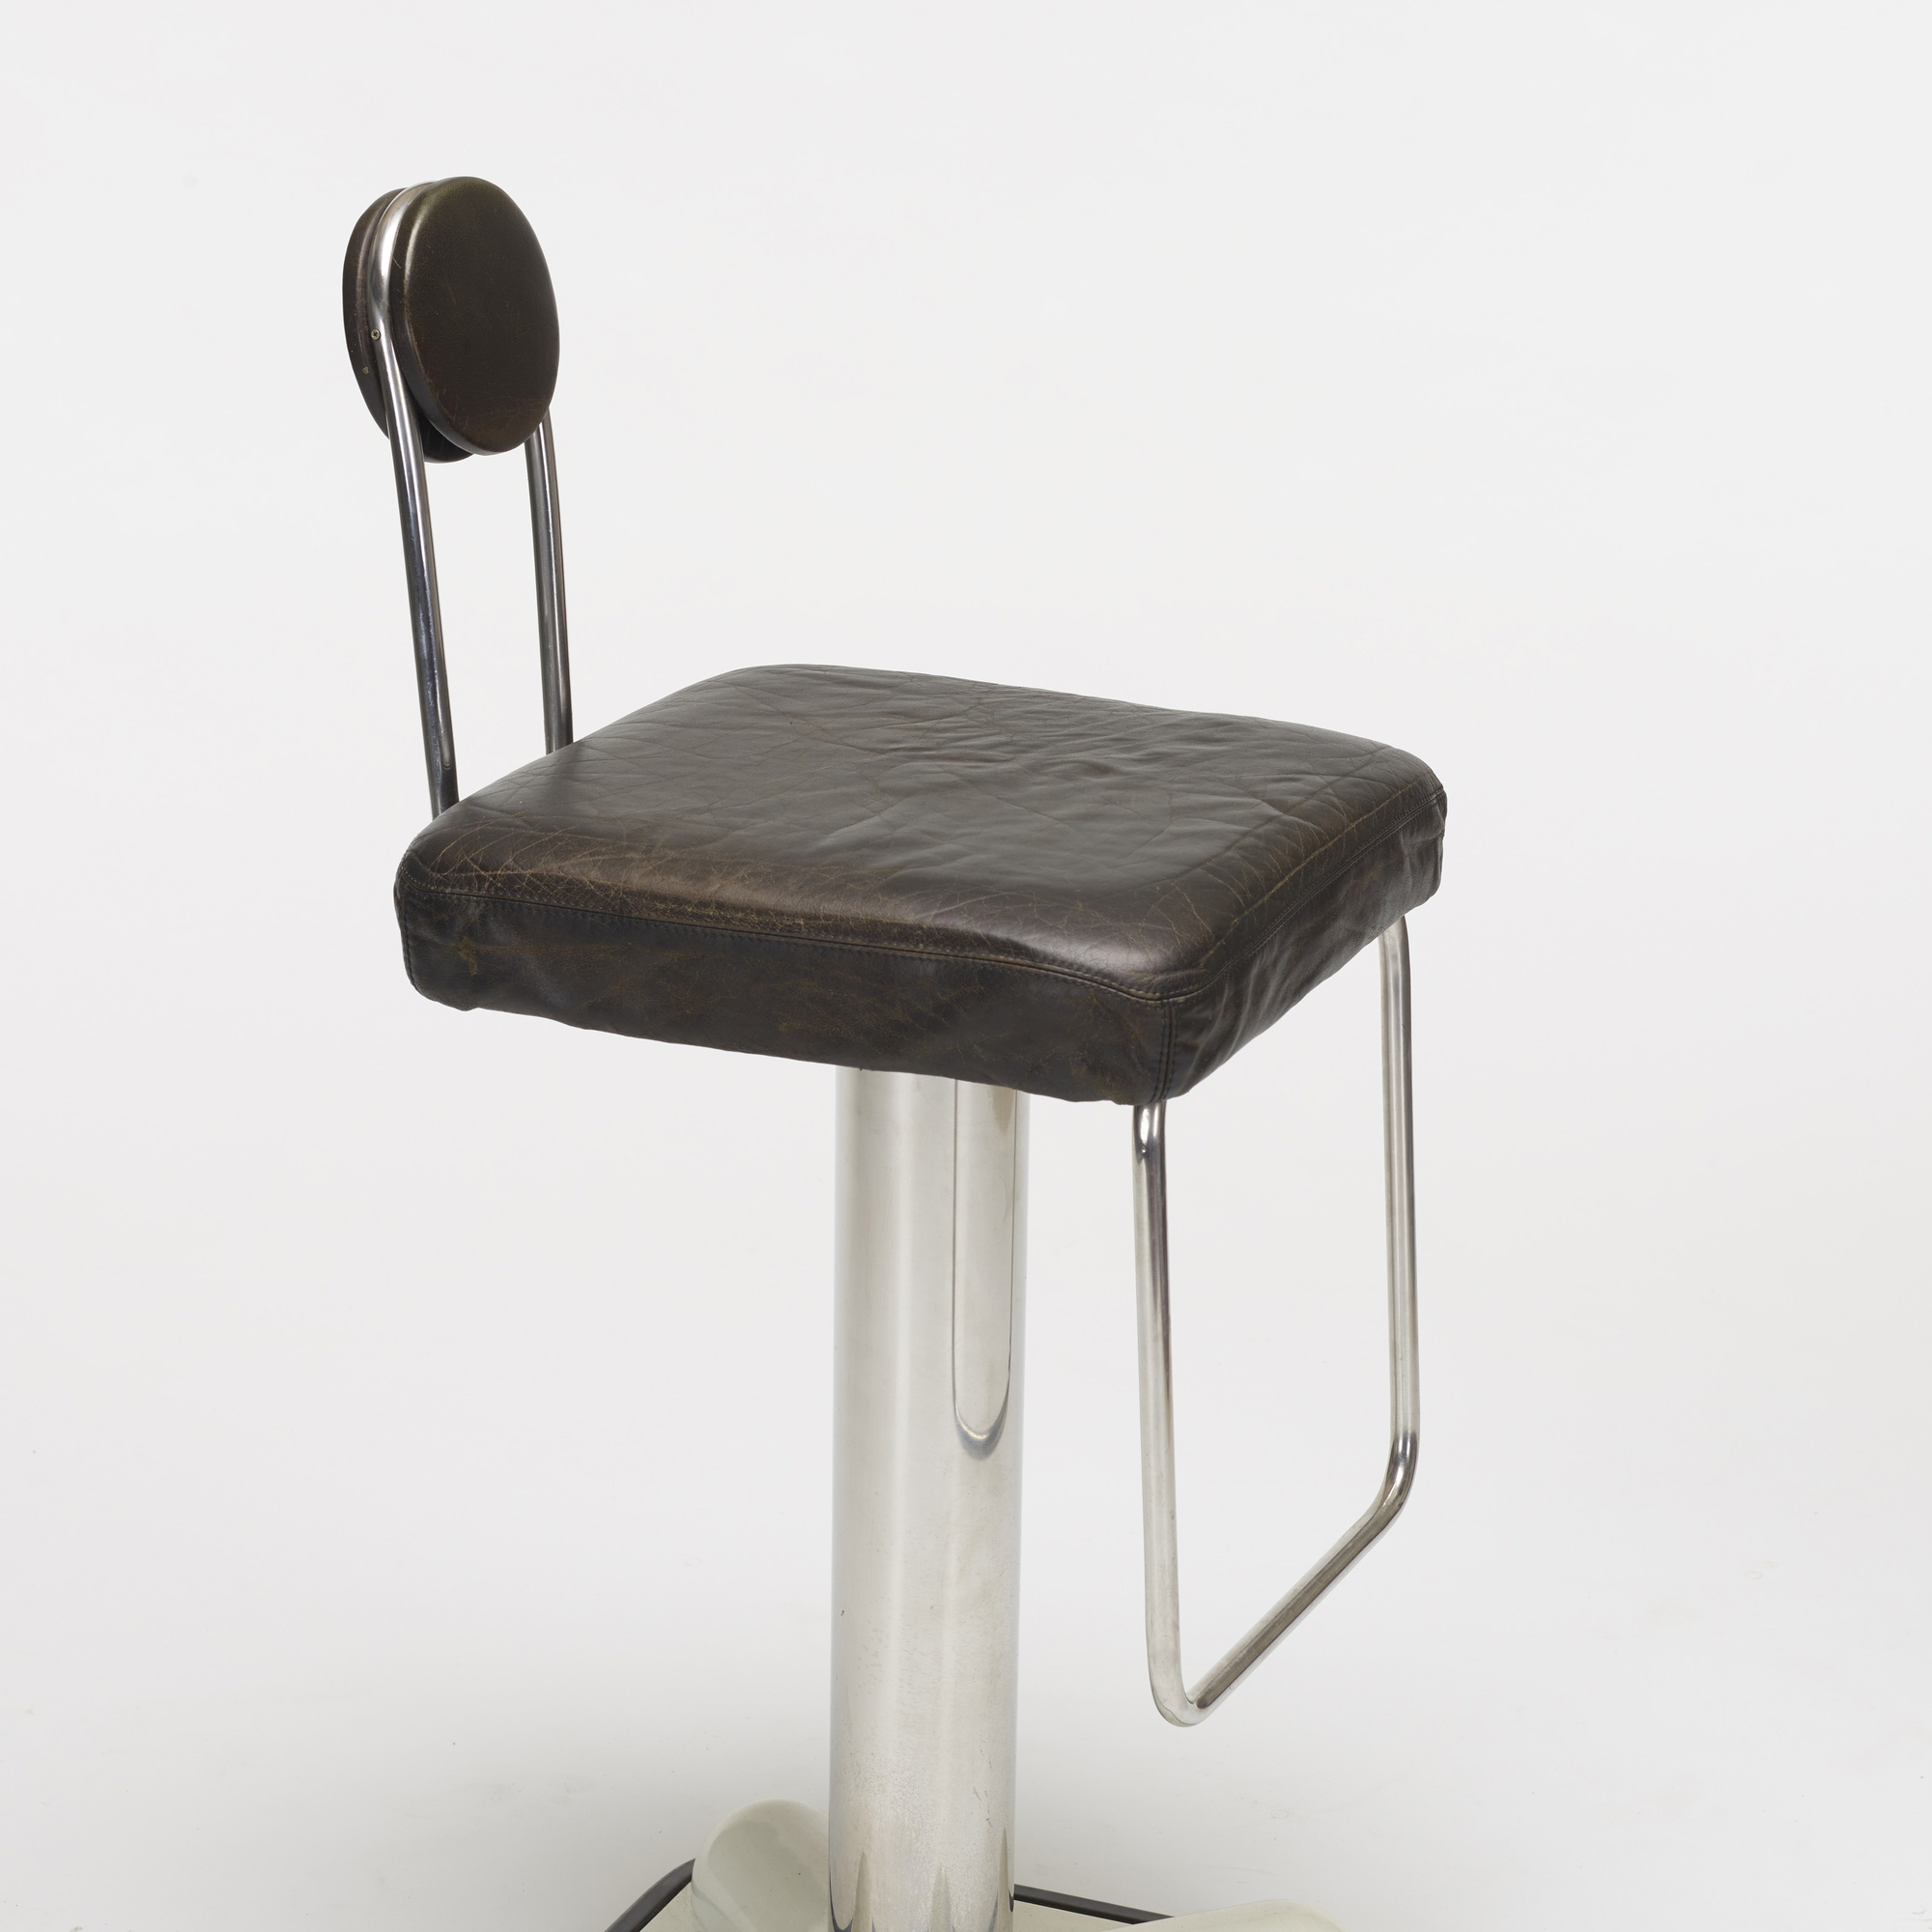 210: Joe Colombo / Birillo stool (3 of 3)